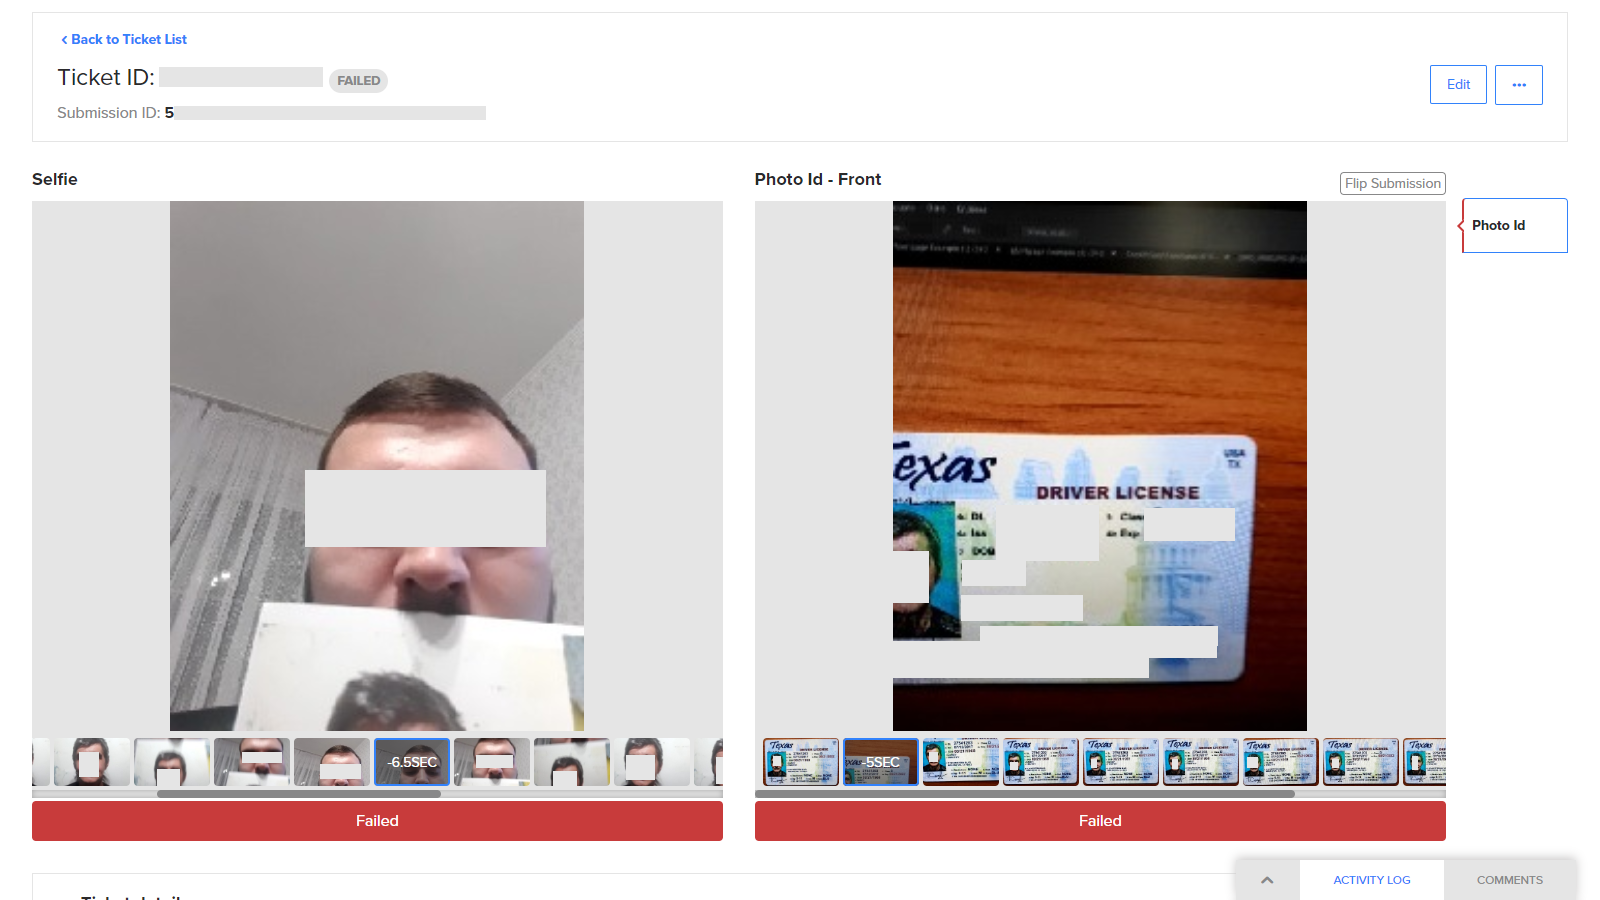 REAL - Bad actor blocked w/ printed photo & forged digital ID